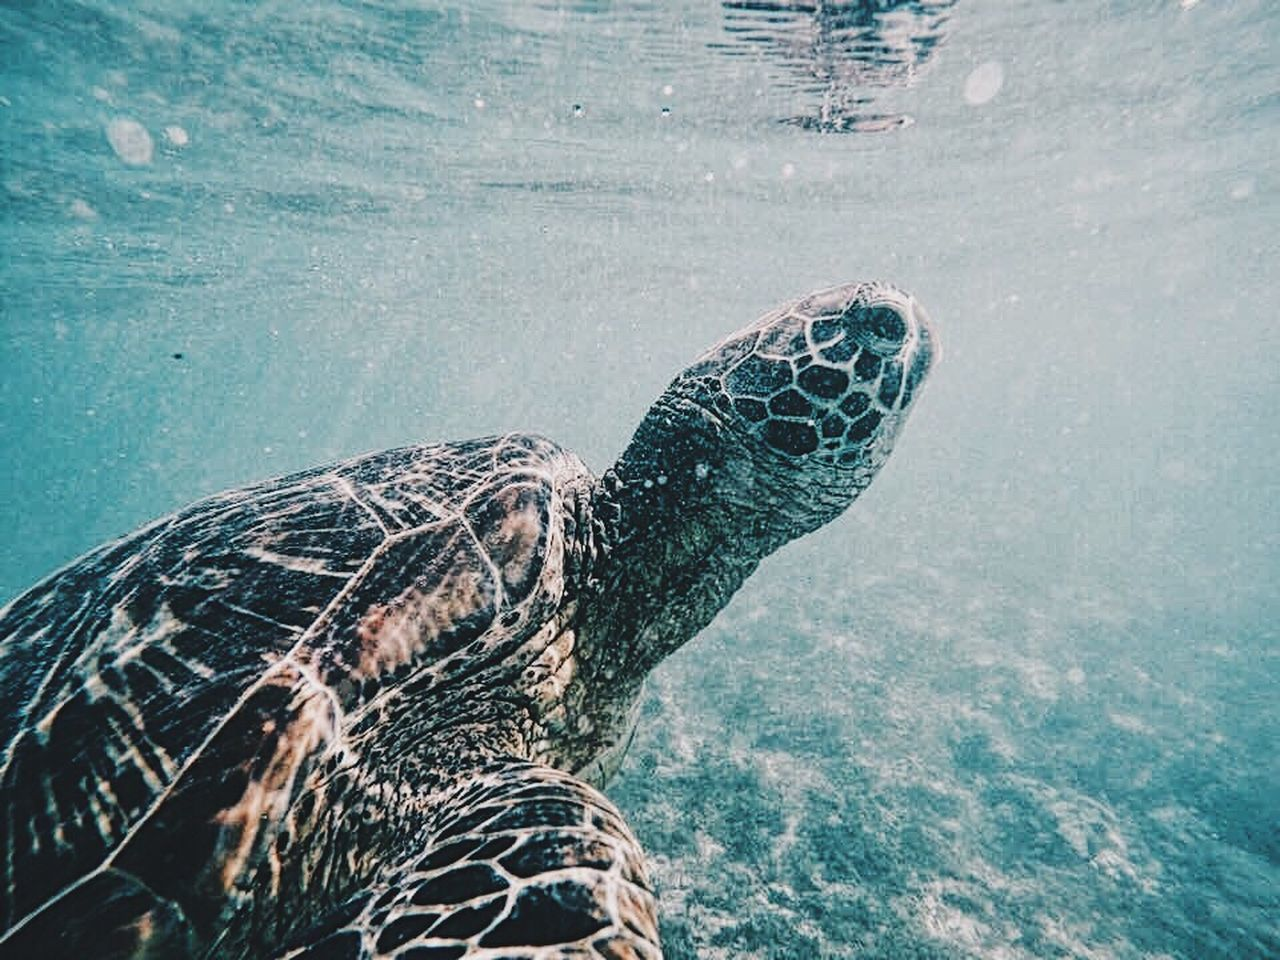 Mr turtle Animal Themes Swimming Turtle Sea Turtle Water Sea Animals In The Wild Animal Wildlife Reptile Underwater Sea Life One Animal Nature Close-up UnderSea No People Outdoors Day EyeEmNewHere Adventure Underwater Photography UnderSea